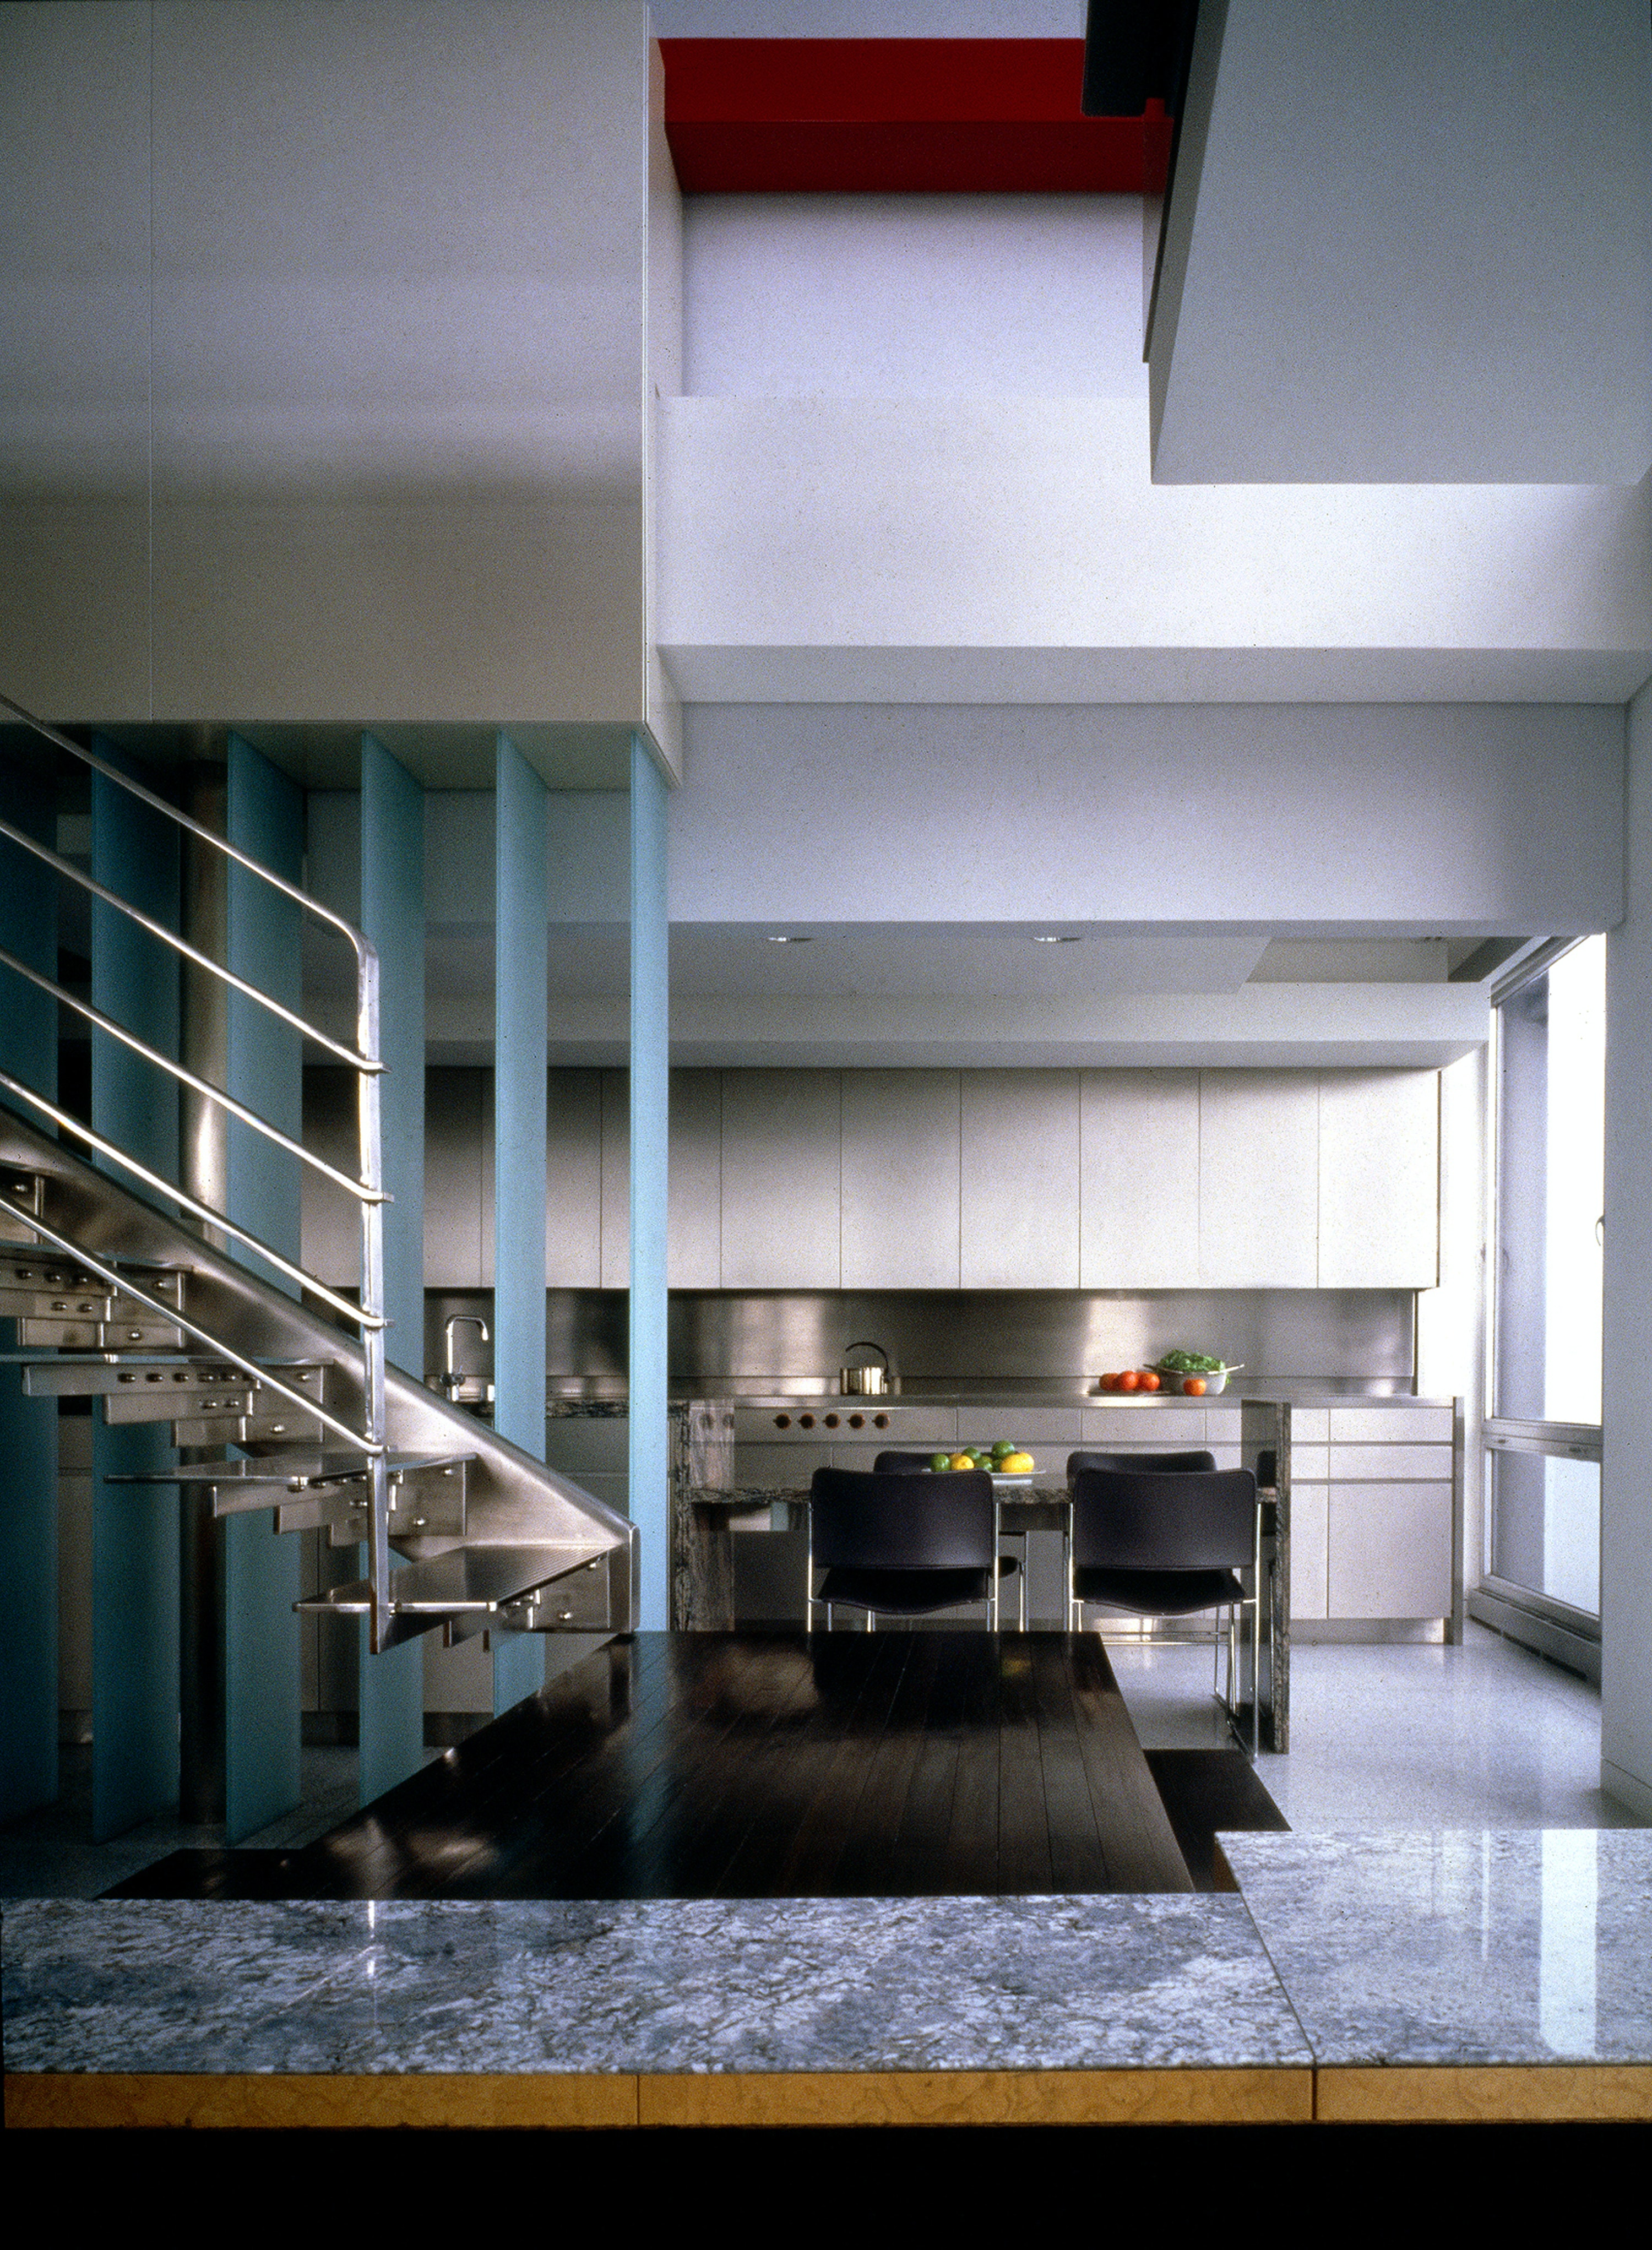 A Stainless Steel Apartment 09